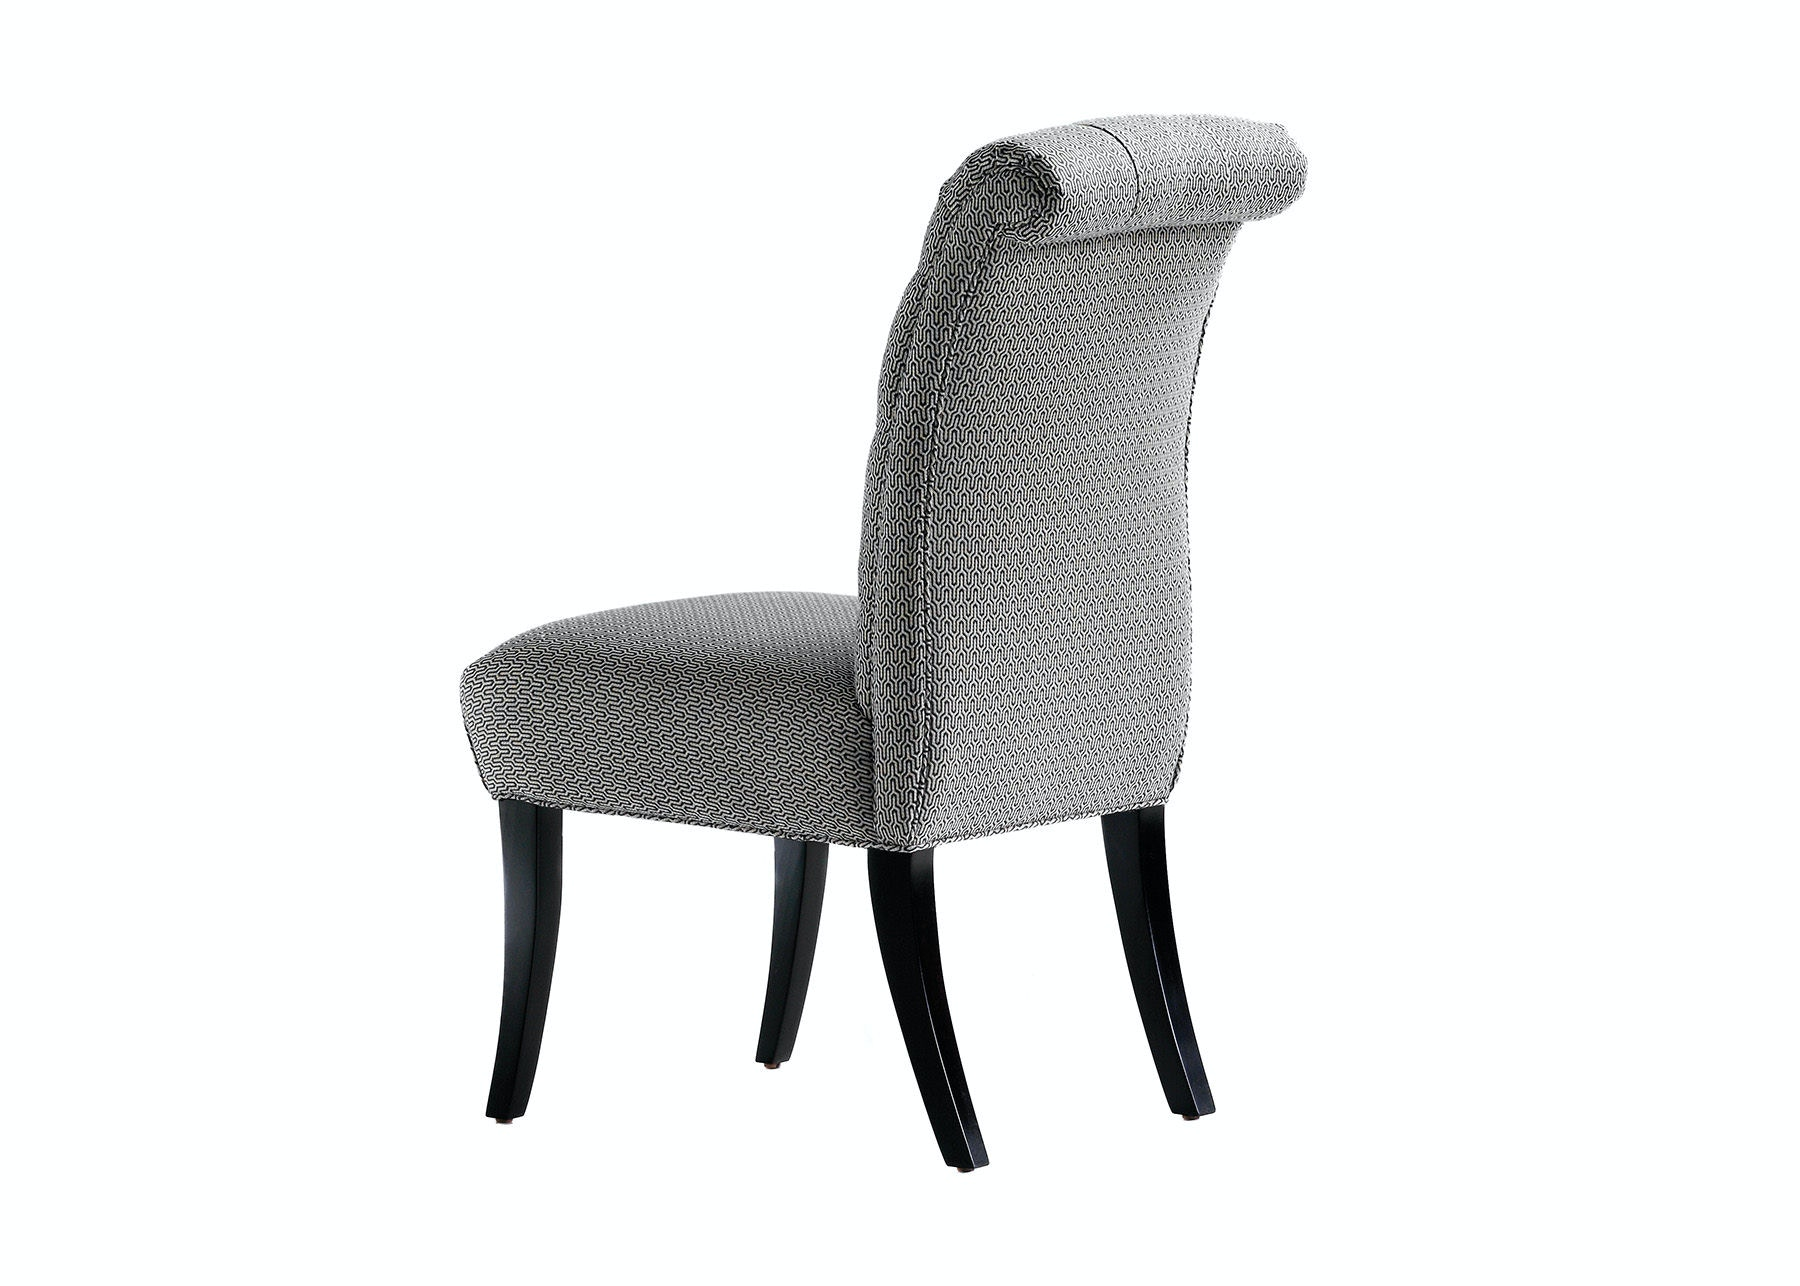 jessica charles sebastian tufted dining chair 1901t